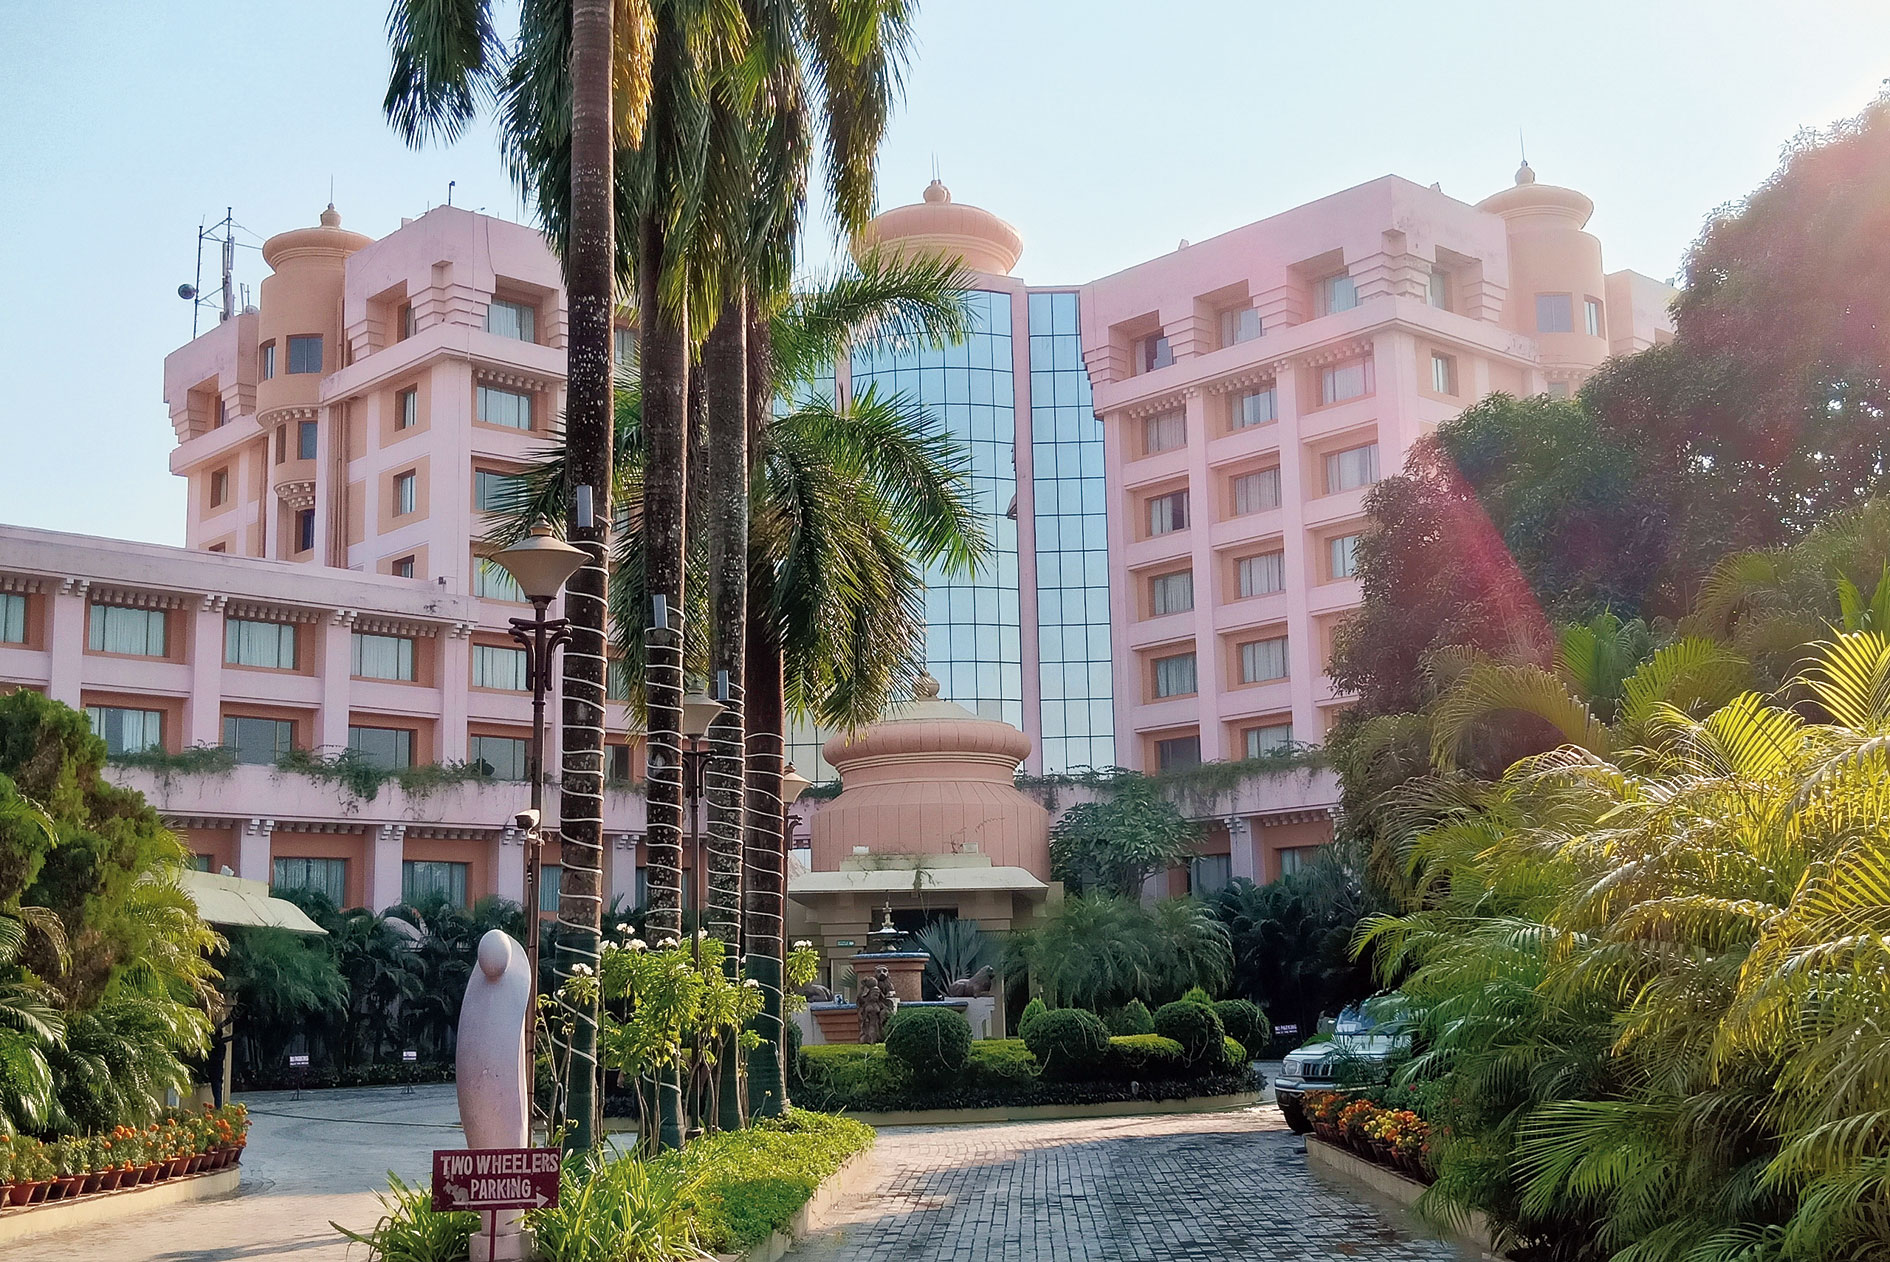 A Bhubaneswar hotel that will dish out various cuisines at the upcoming food festival.